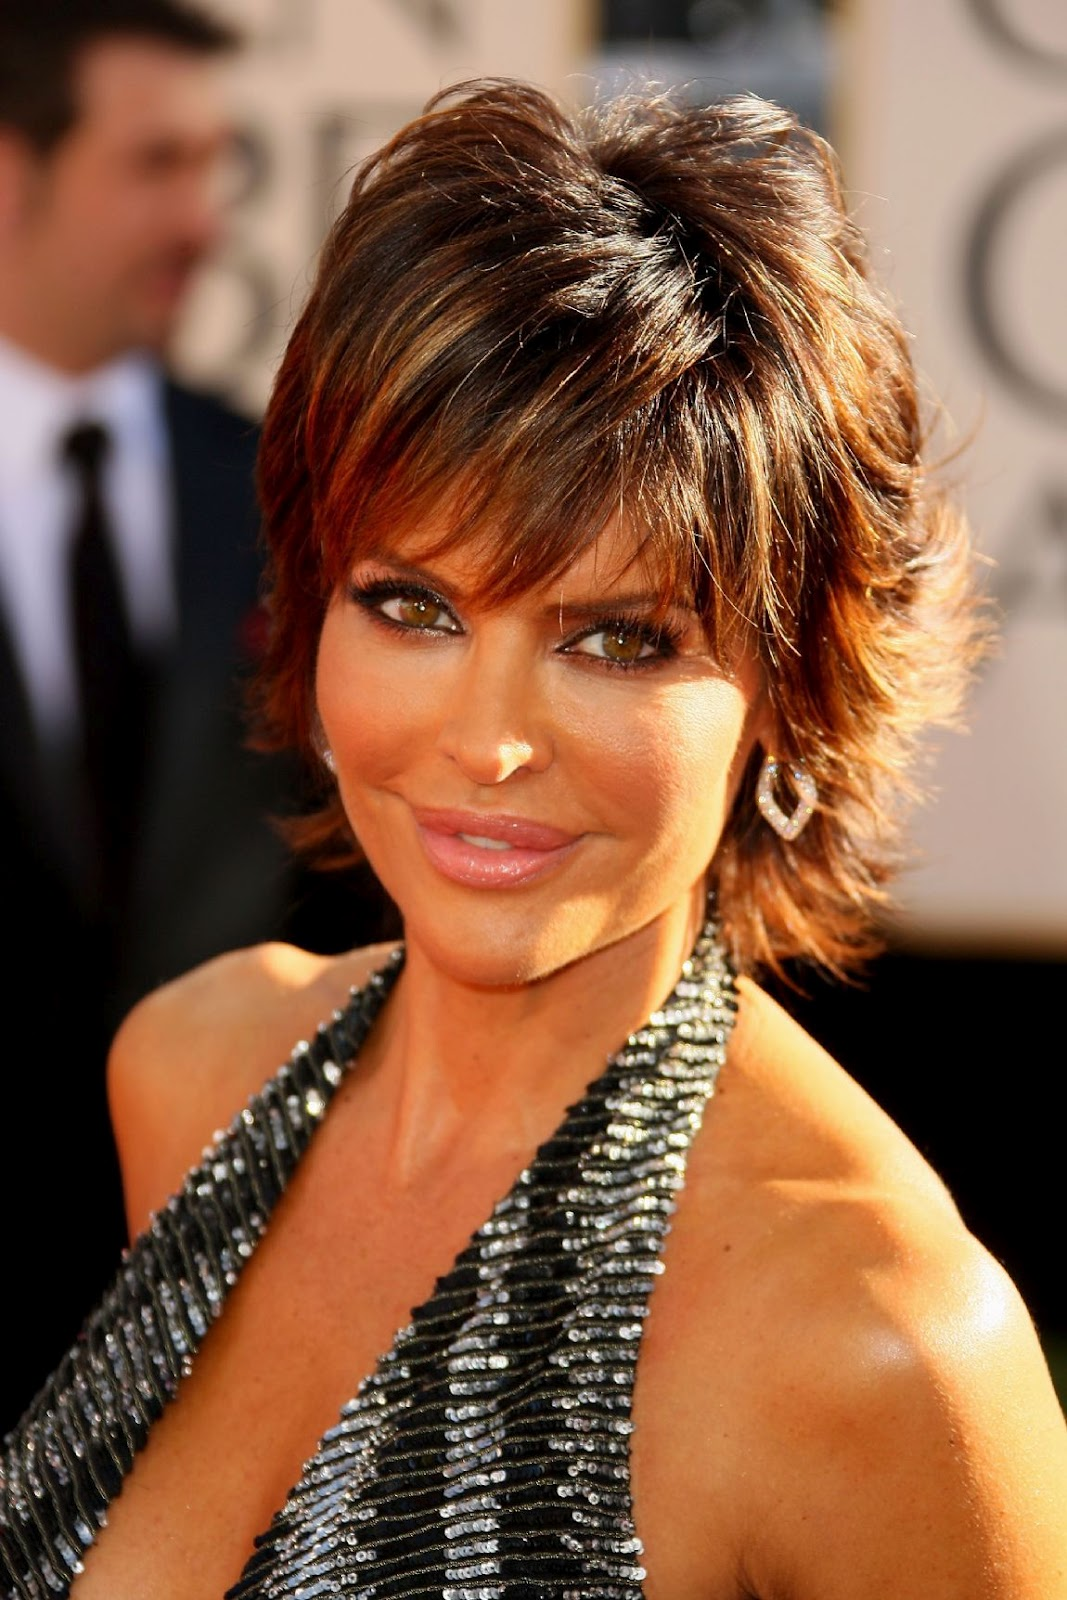 Lisa Rinna Hairstyle Trends: May 2012